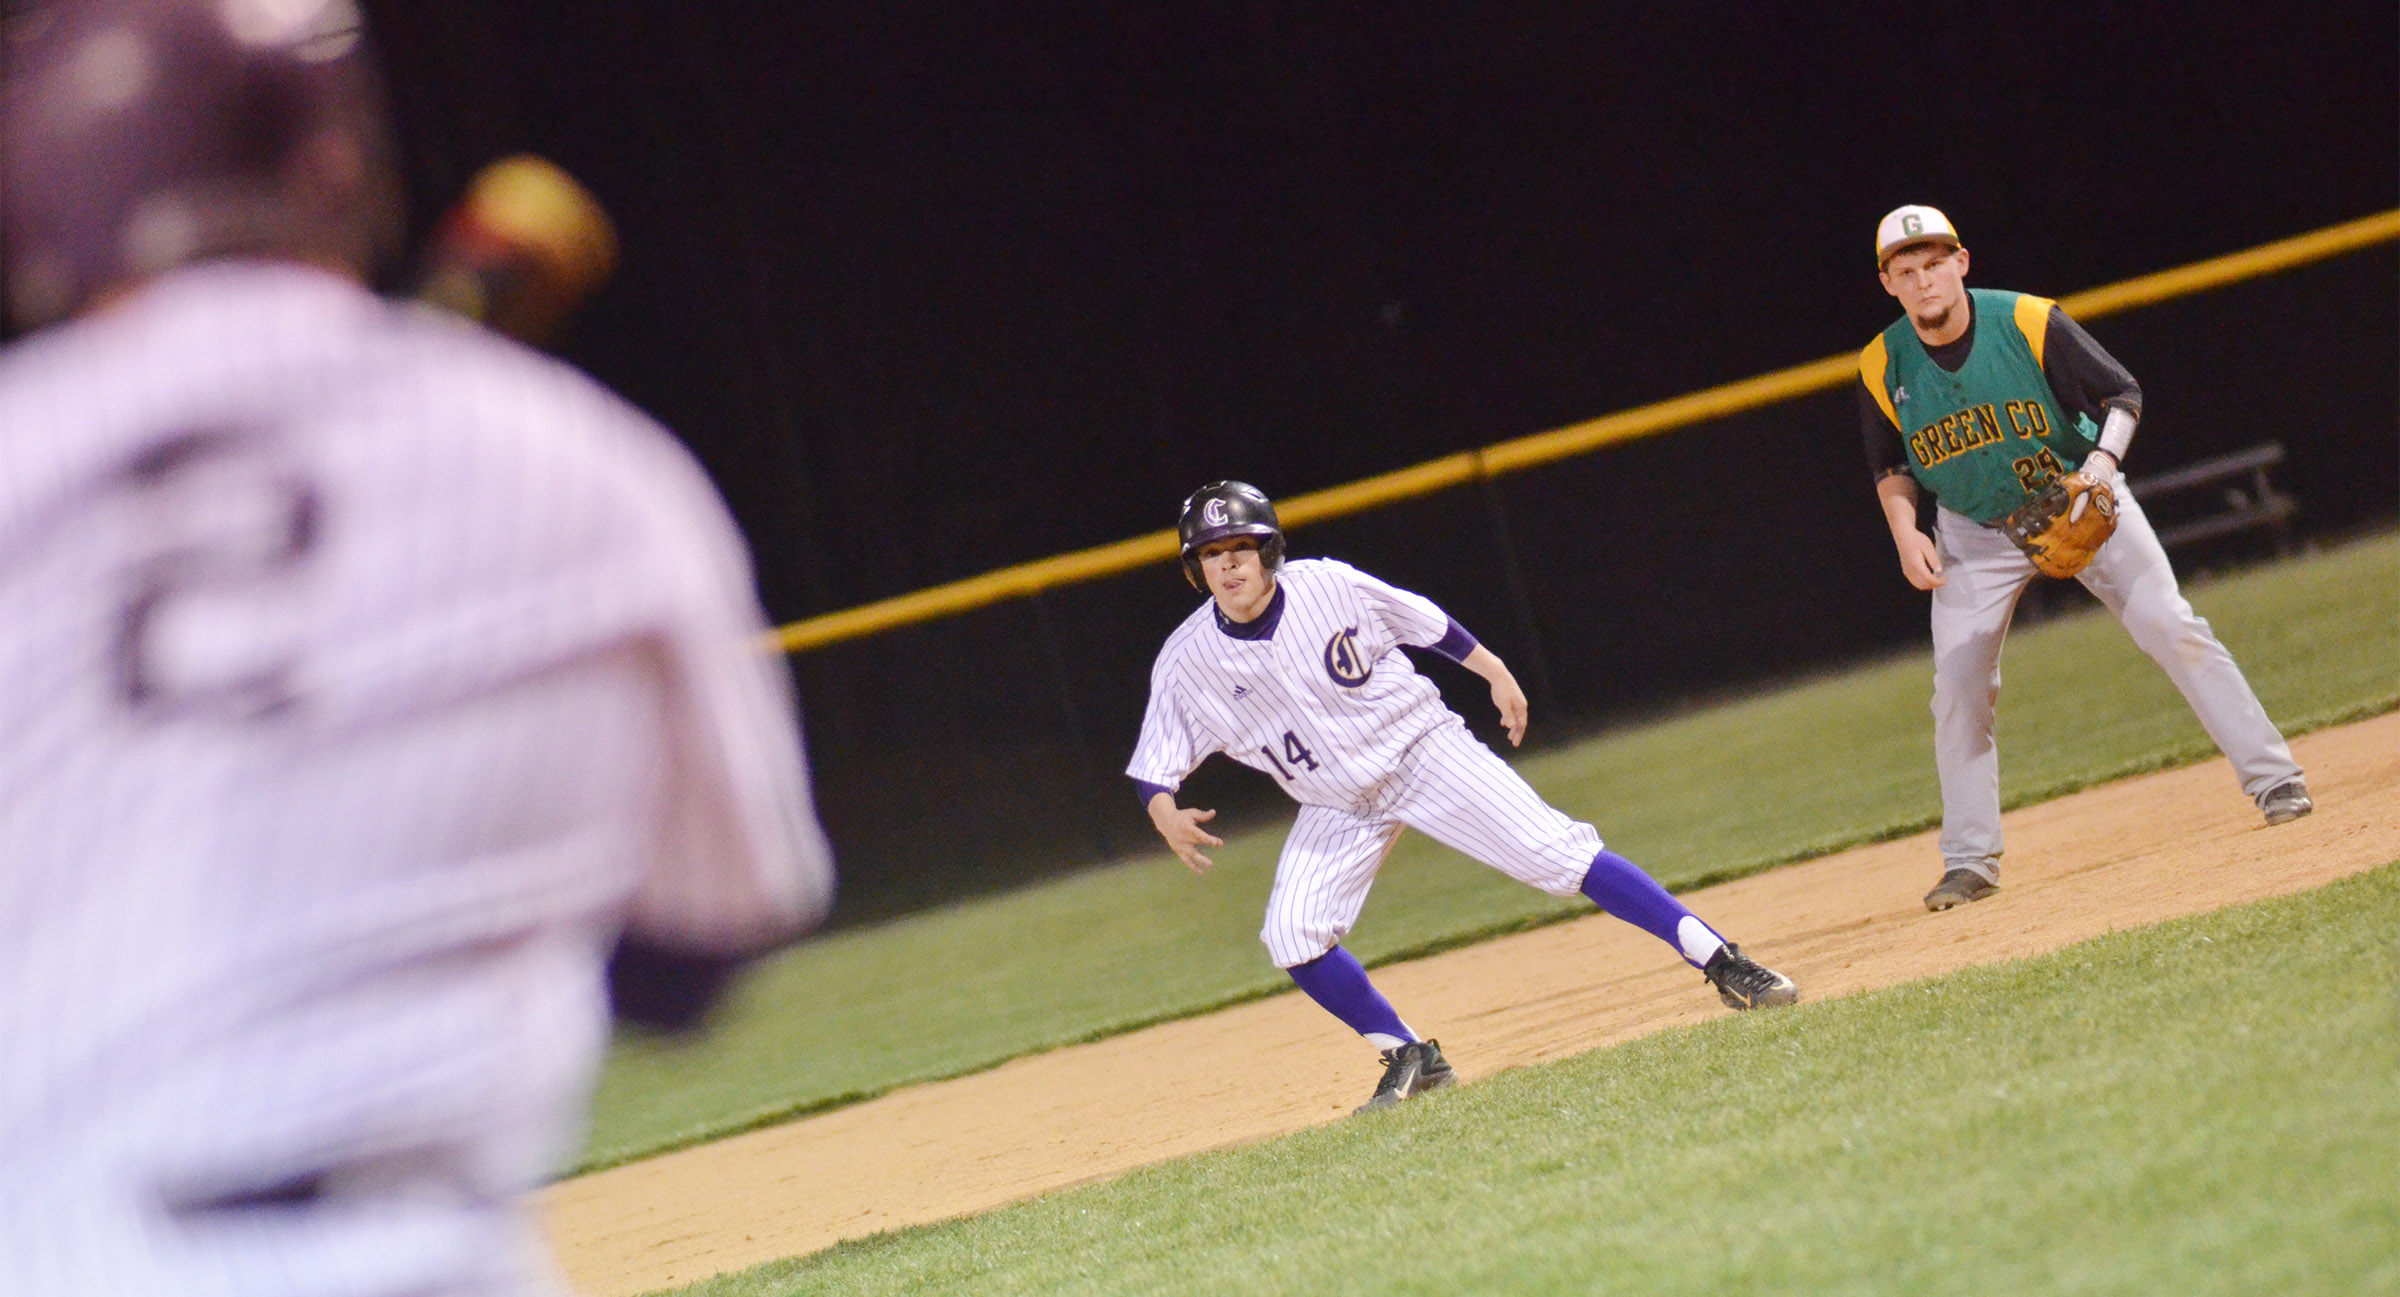 CHS sophomore Ryan Kearney looks to steal second.